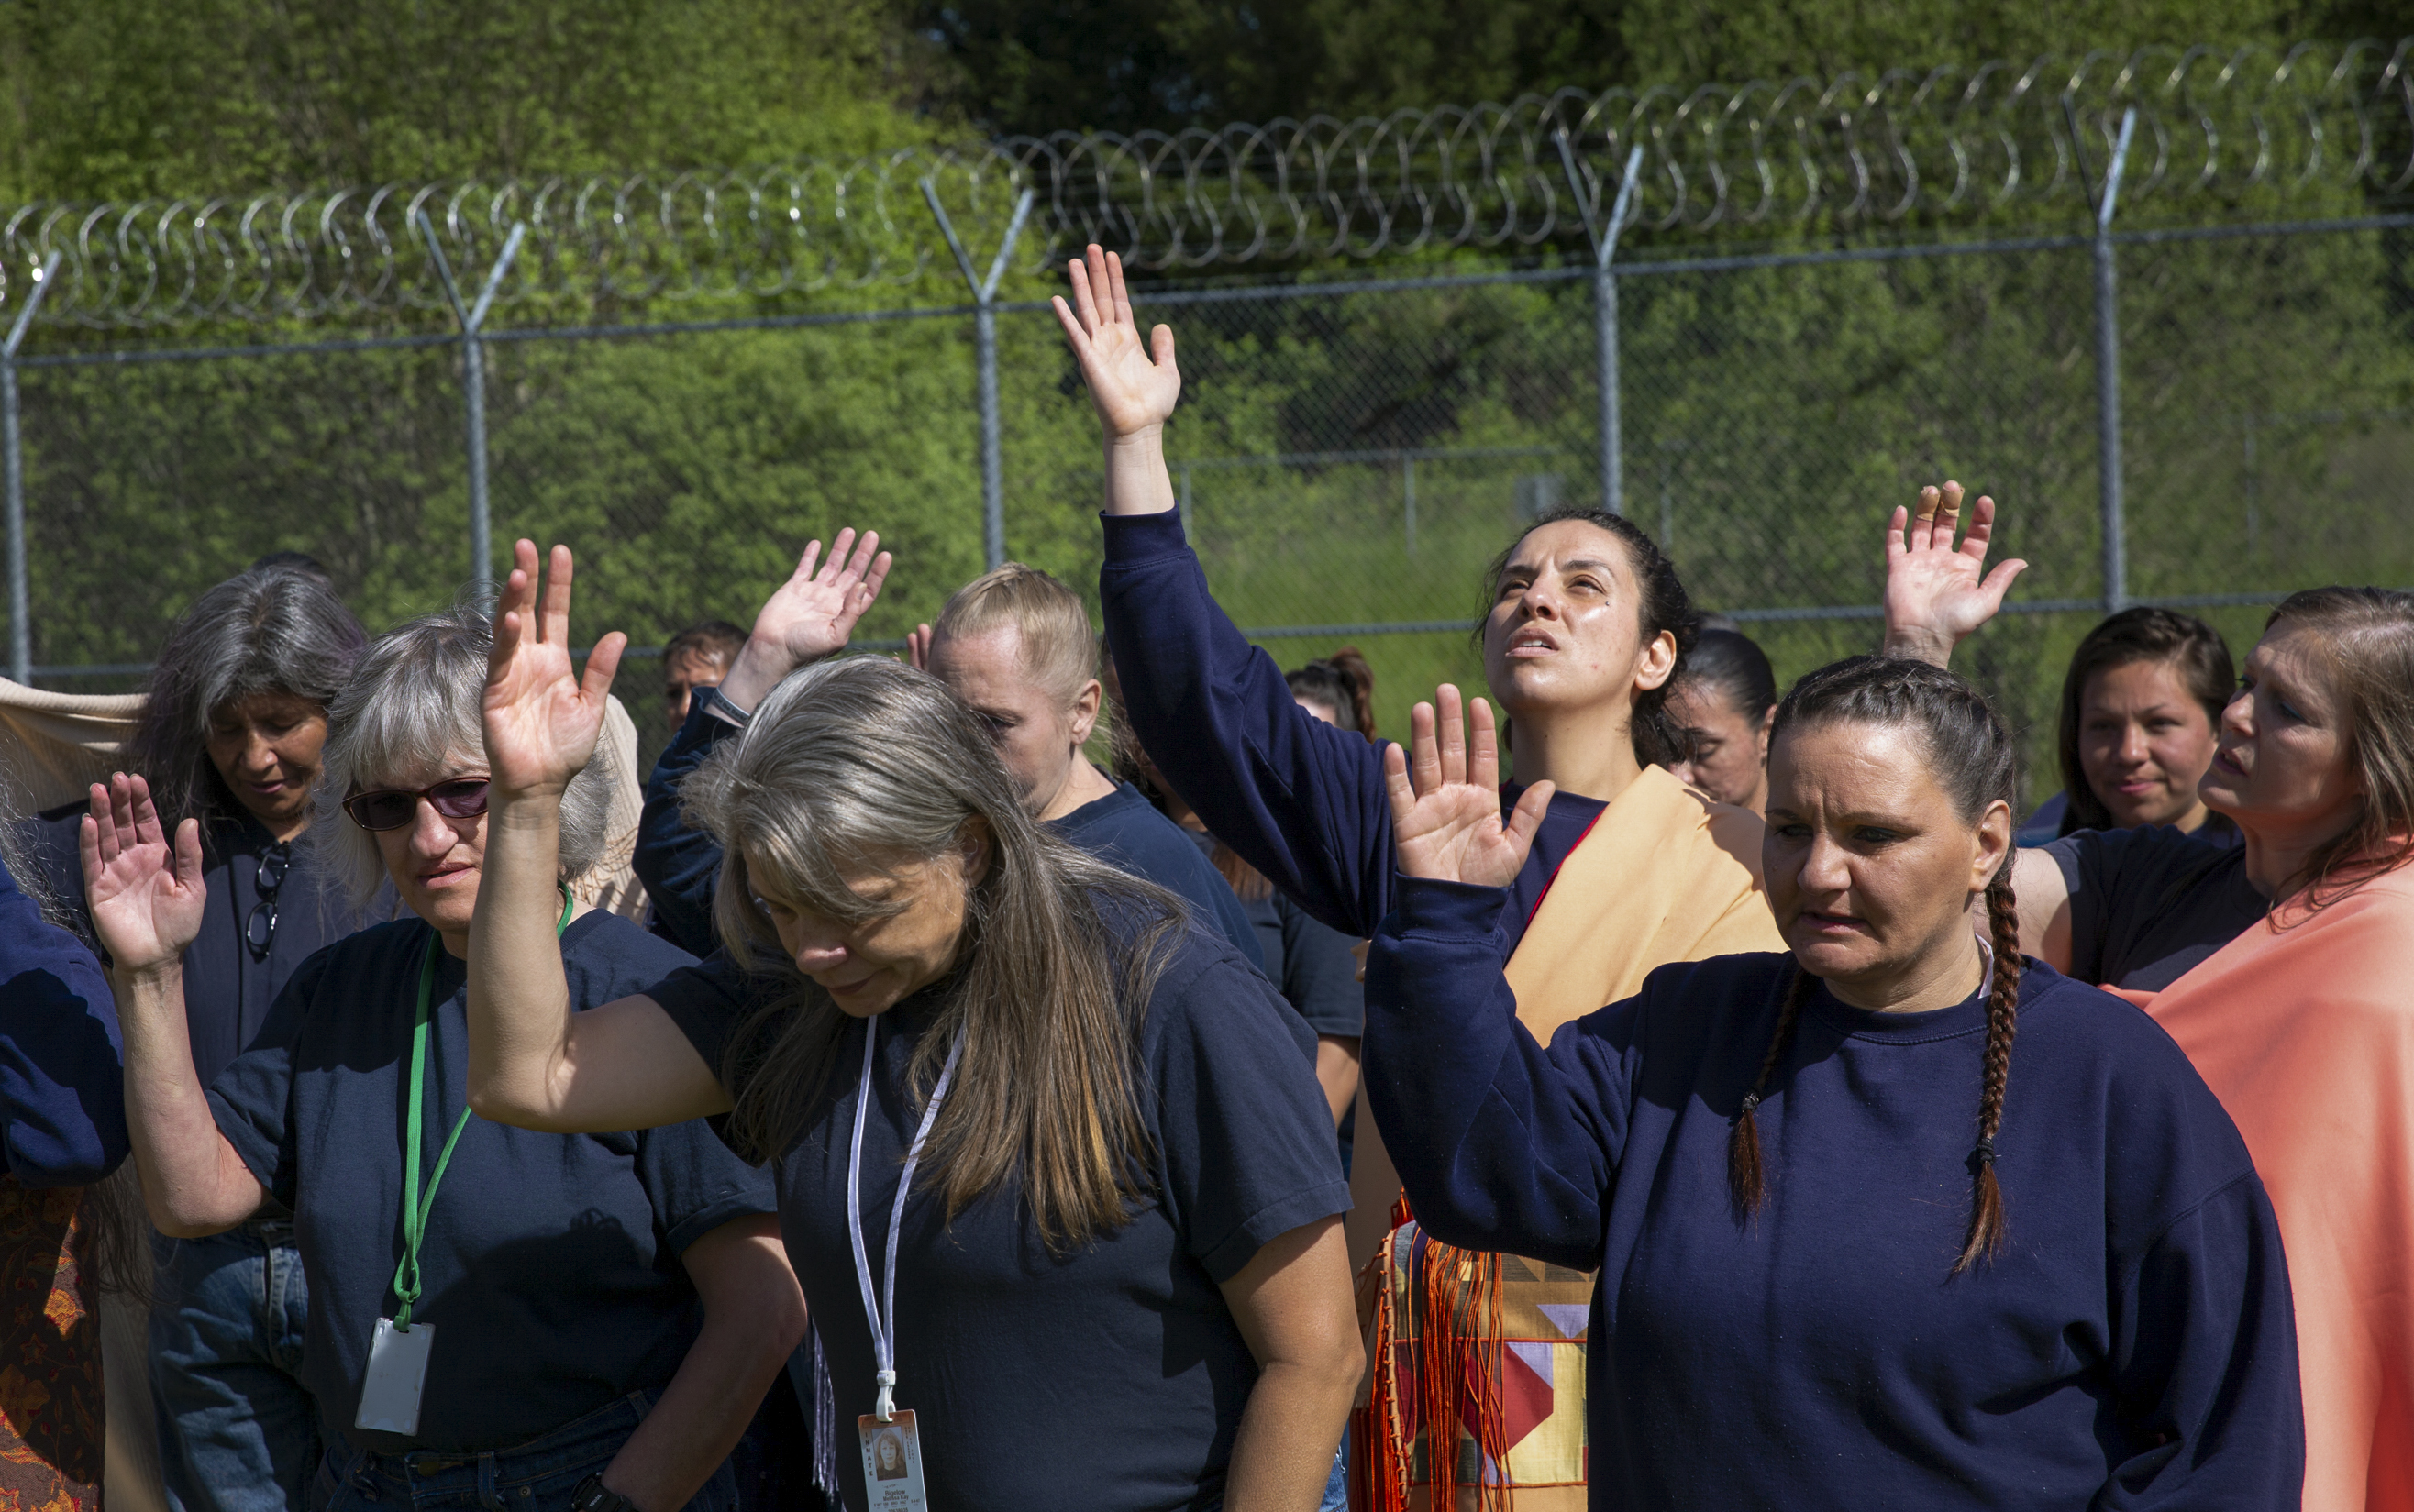 Women pray during a spring celebration and first foods blessing at Coffee Creek Correctional Institute in Wilsonville, Ore., May 4, 2019. The annual event brings Indigenous women at the prison together with tribal elders and volunteers.